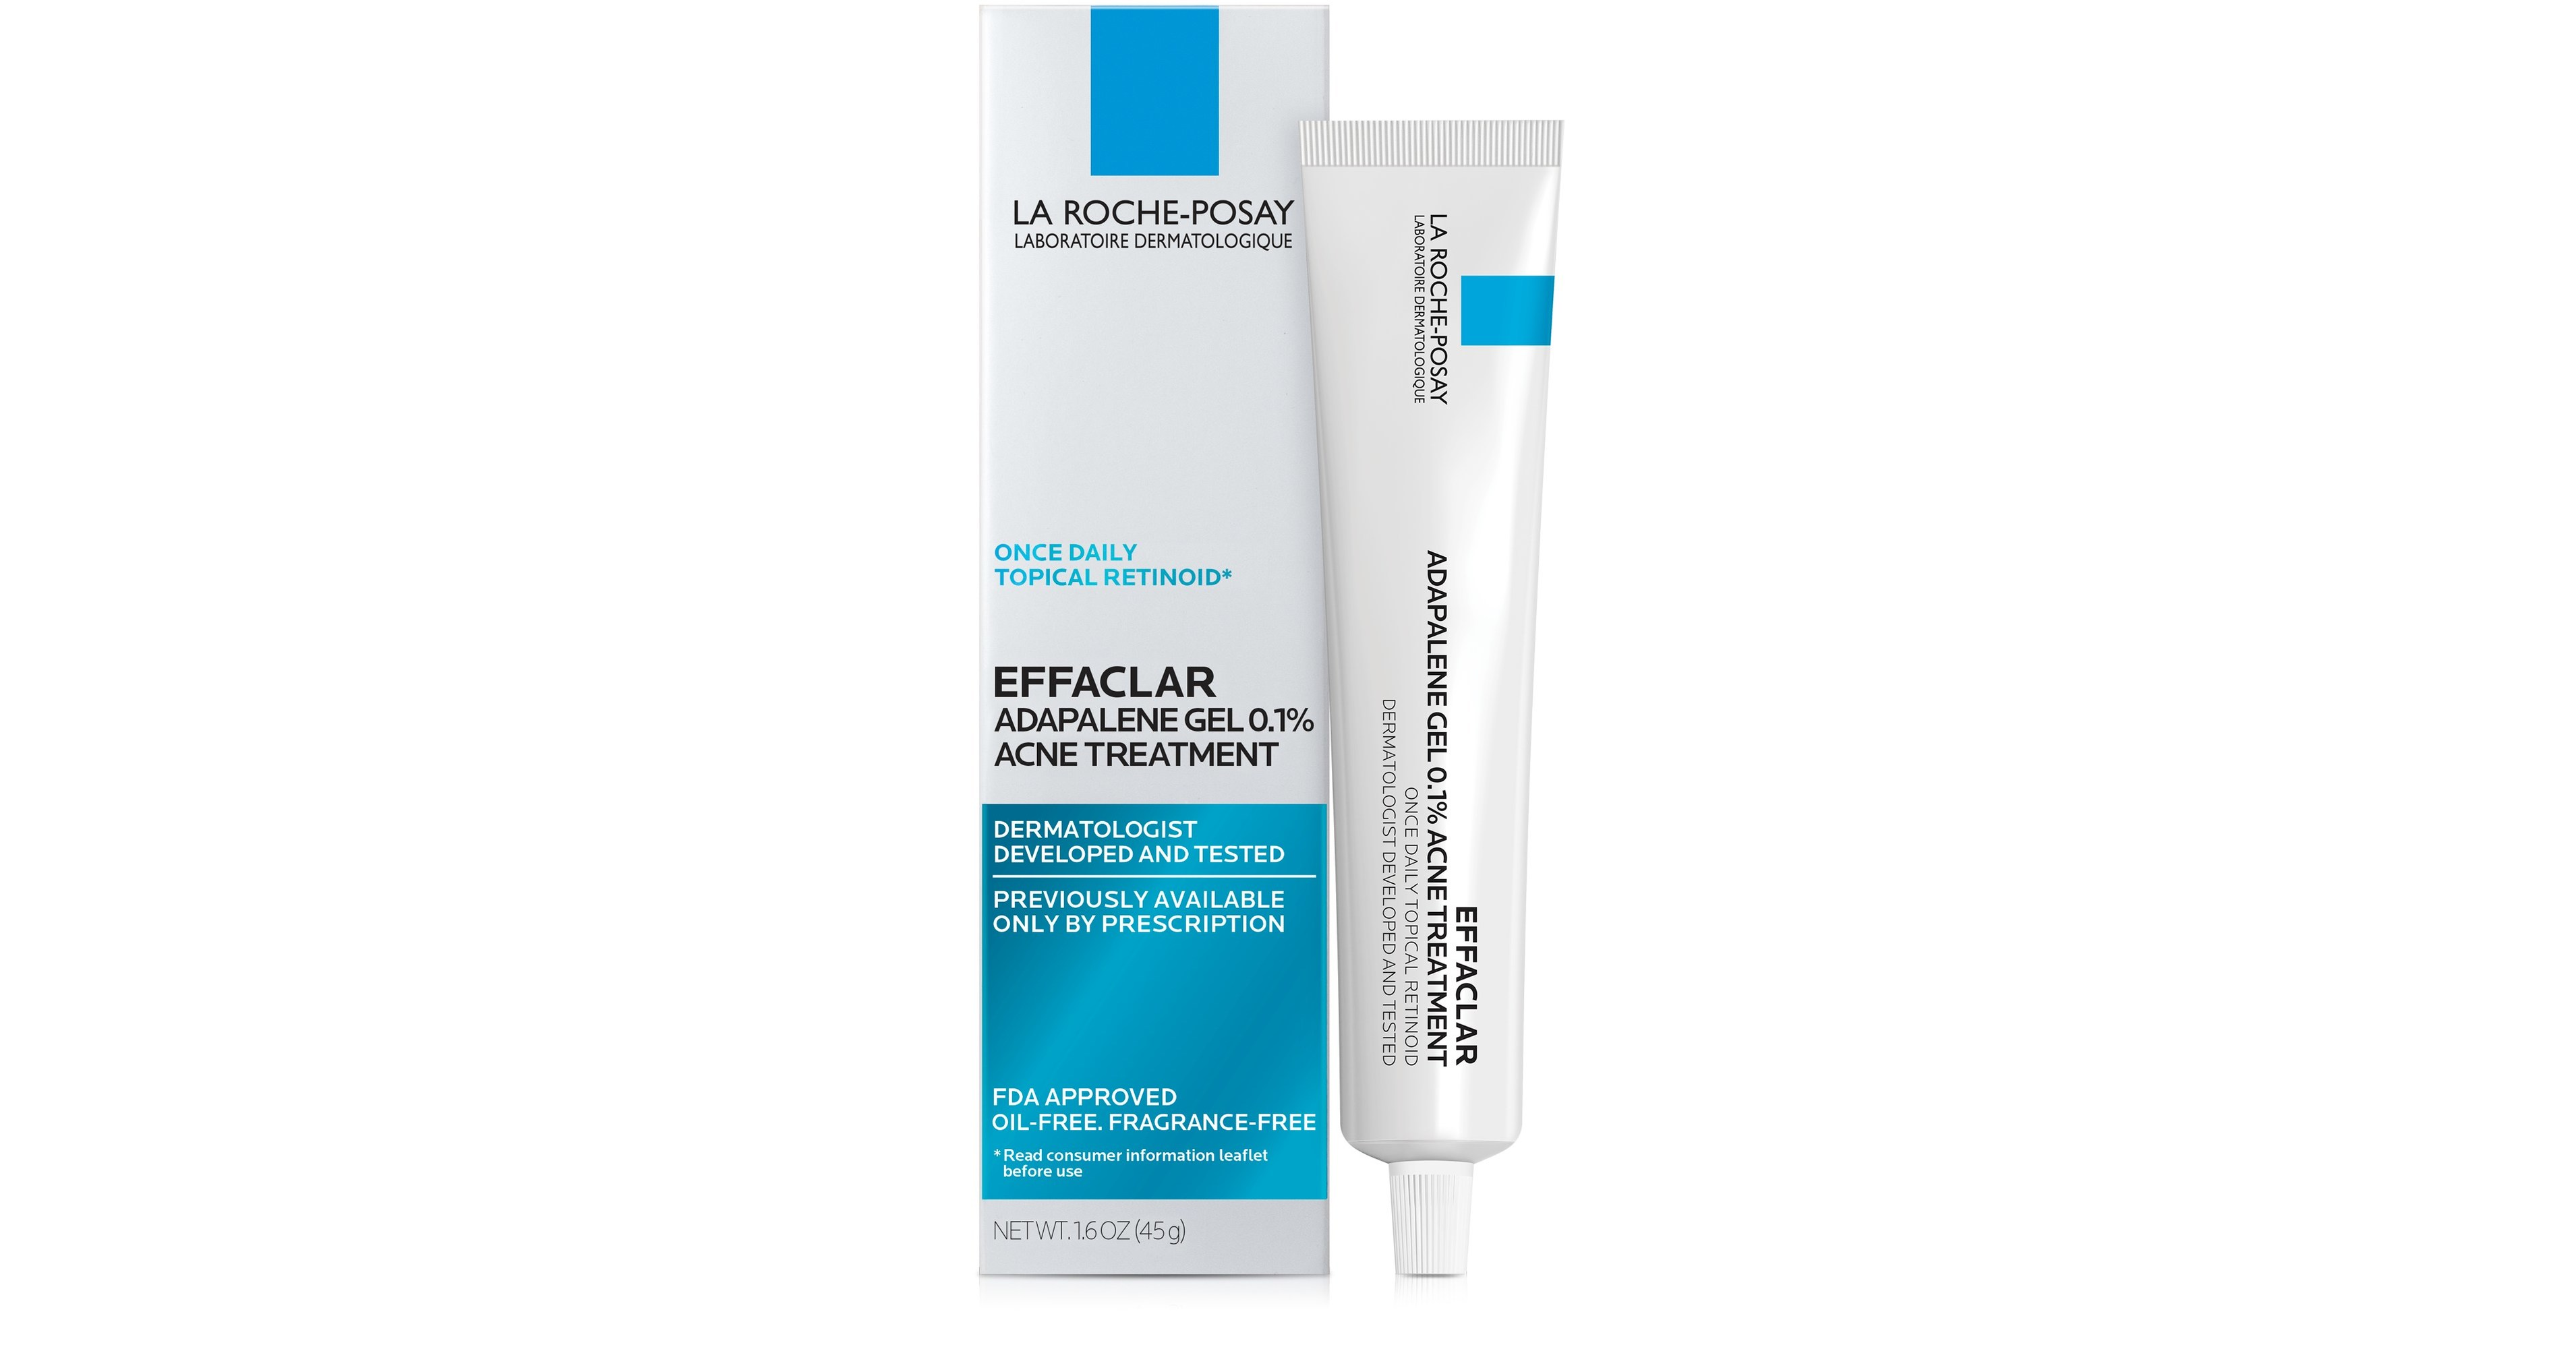 La Roche-Posay Changes The Face Of Acne With Latest FDA